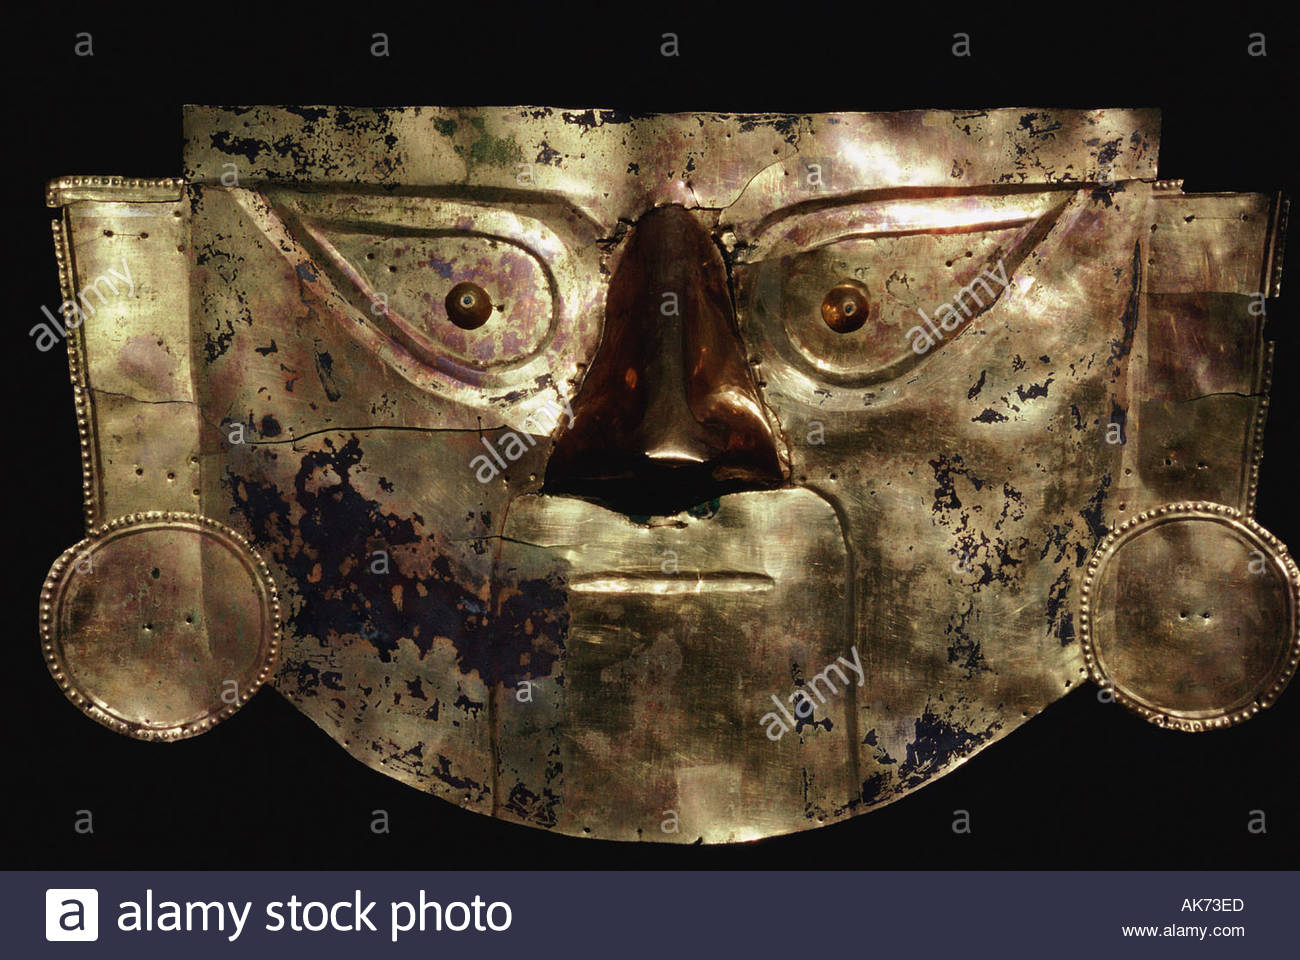 funerary mask made of laminated gold Lambayeque culture Coast North Peru Brüning museum - Stock Image